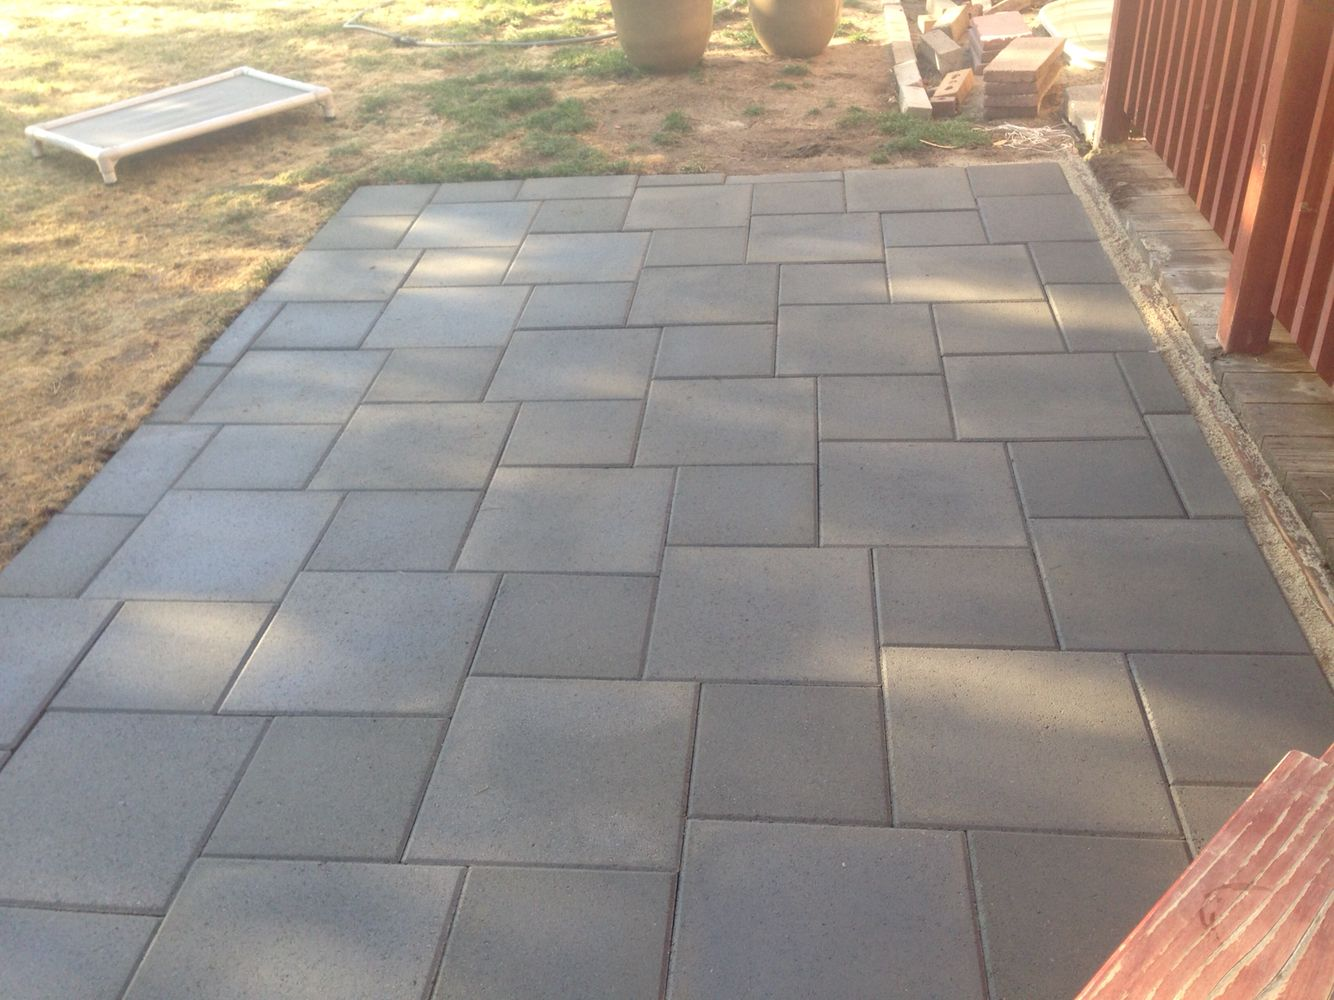 Patio ideas on a budget - Patio Of Inexpensive Concrete Pavers More